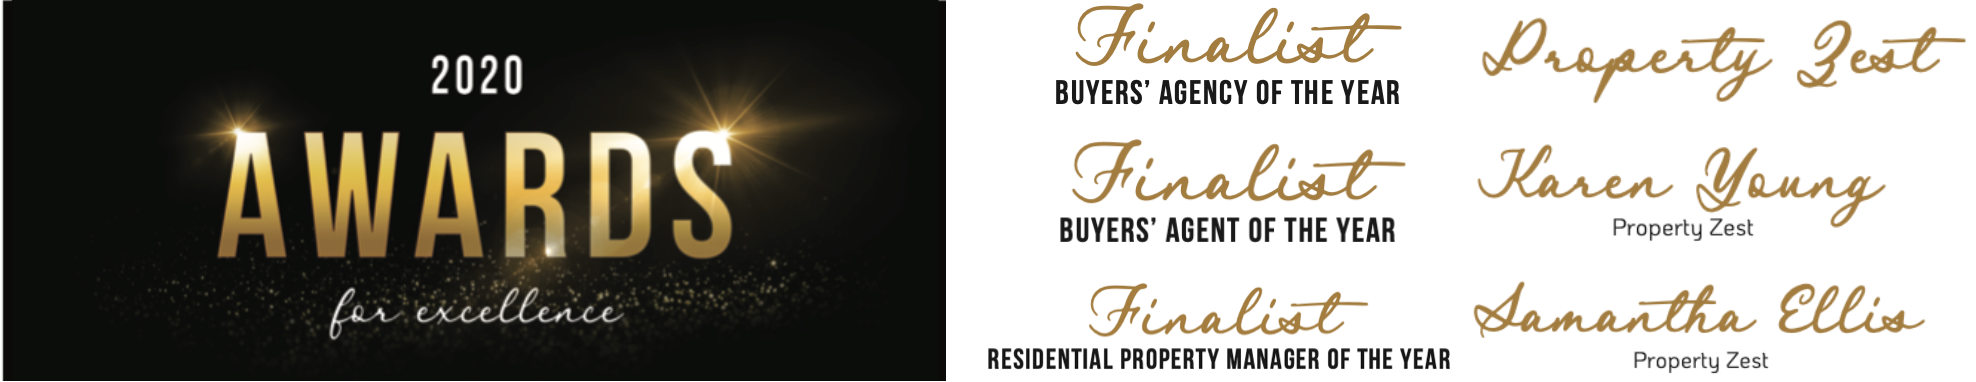 Brisbane buyers agent - 202 REIQ awards - Property Zest - Finalists